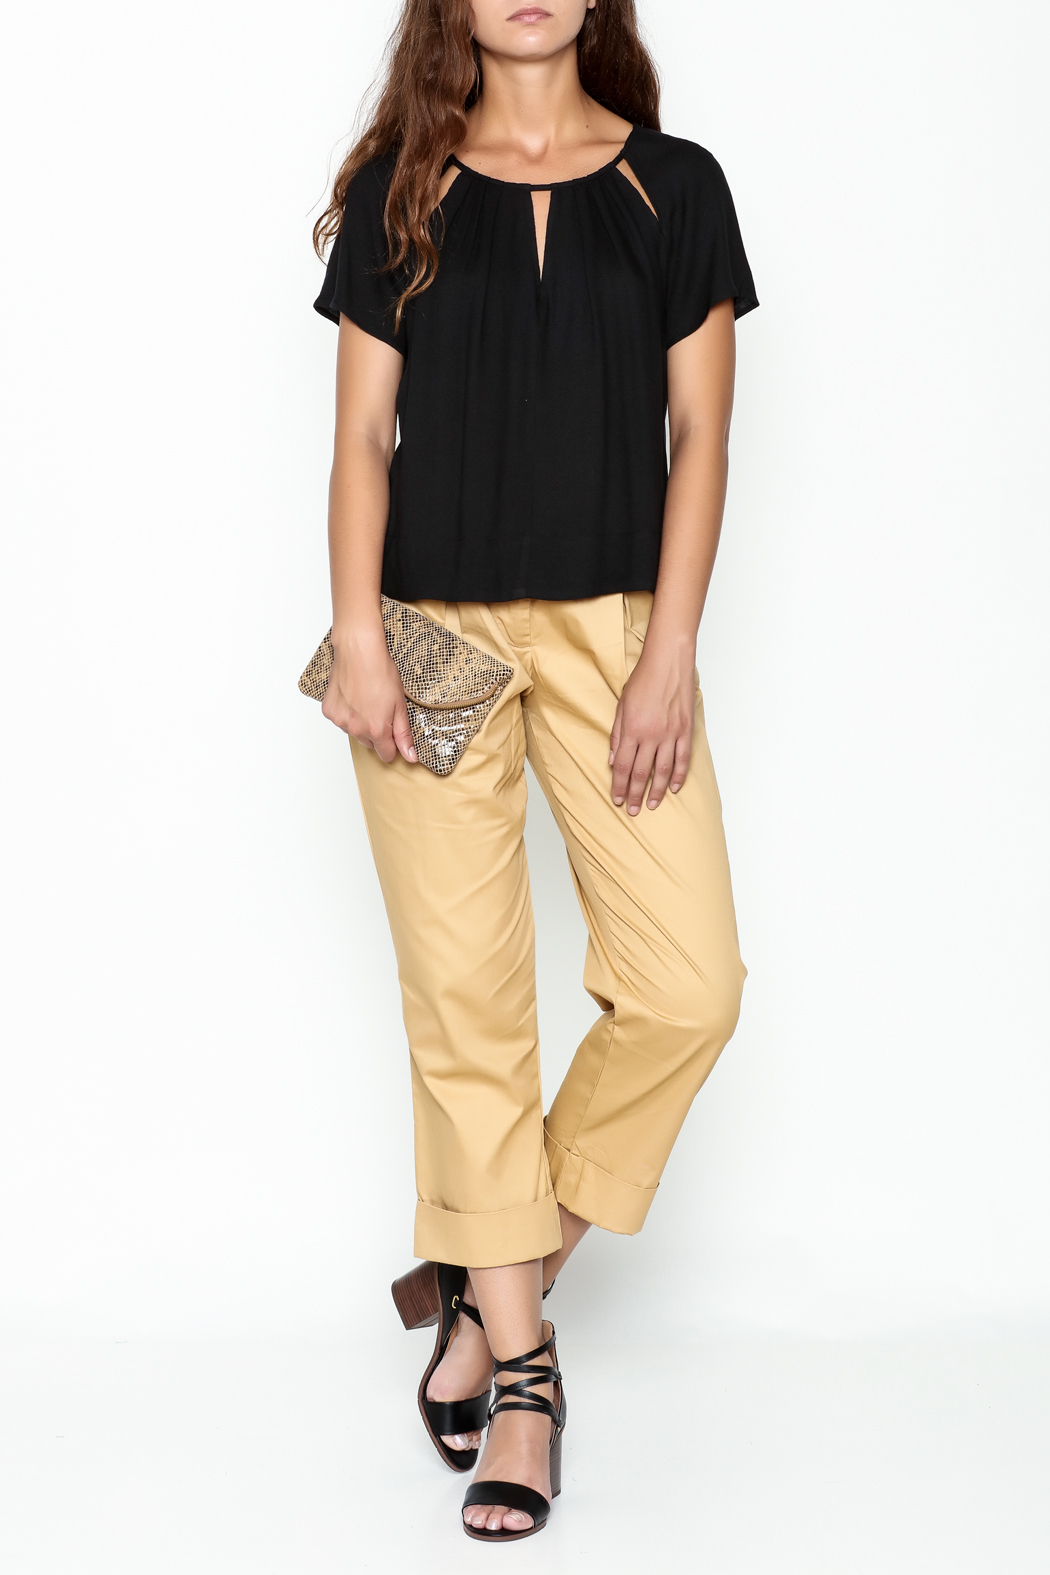 Ella Moss Cutout Collar Top - Side Cropped Image